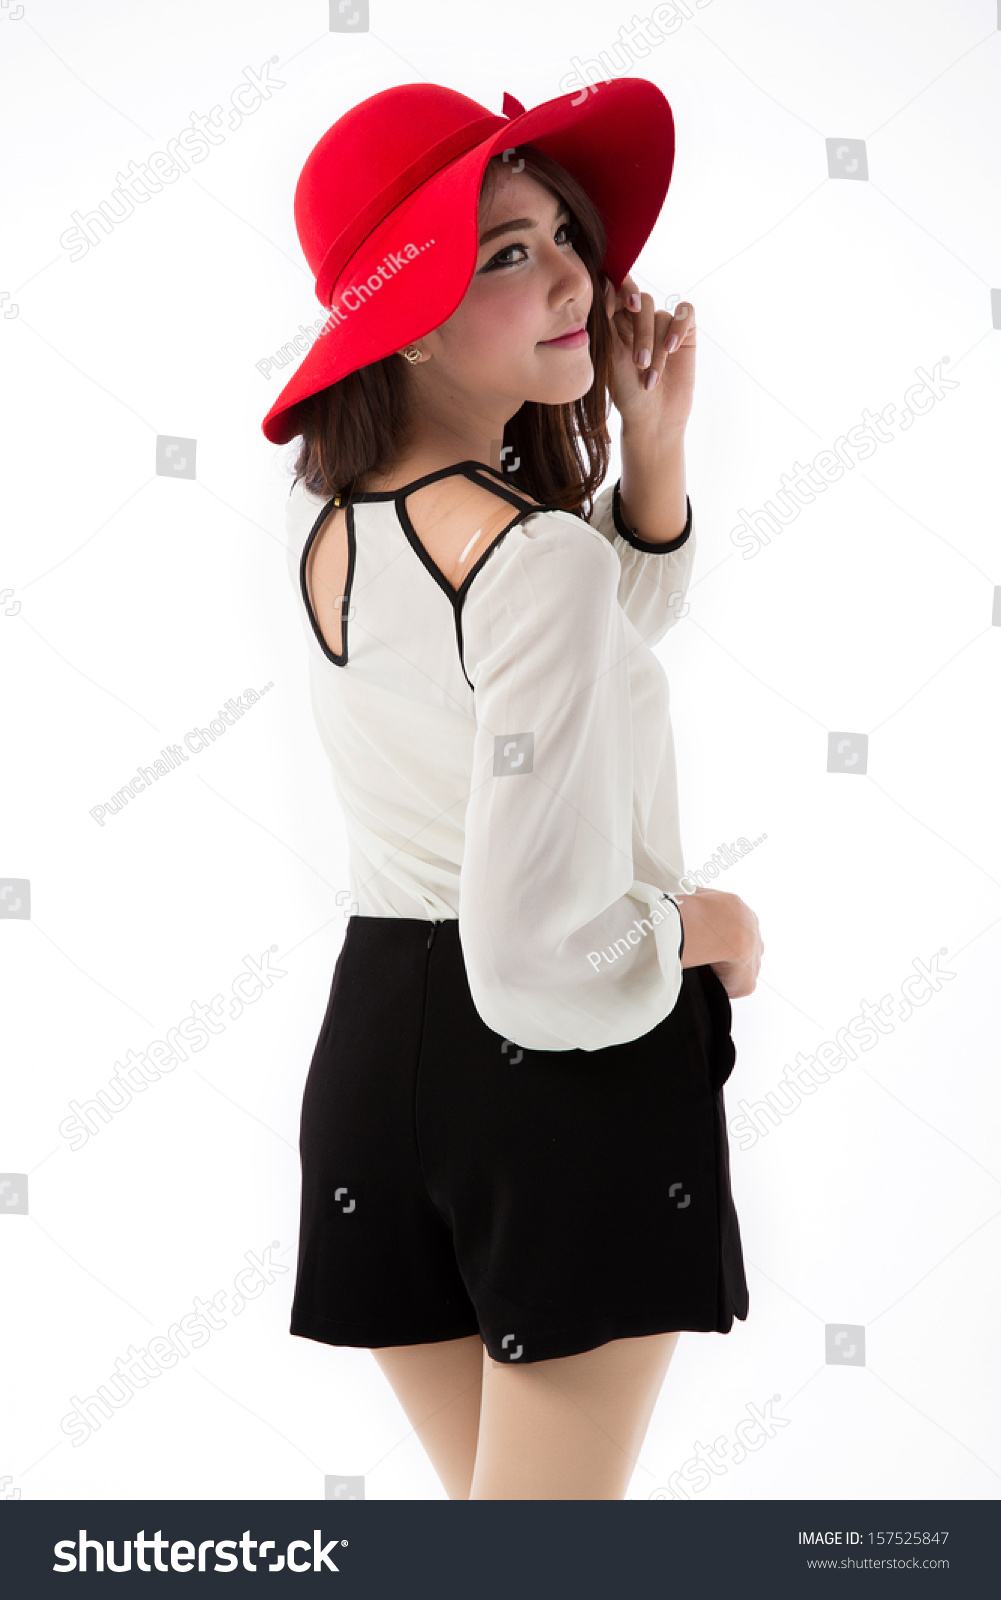 ab2743ea2540 Beautiful young Asian woman posing in white blouse and black skirt with red  had isolated on white background. - Image